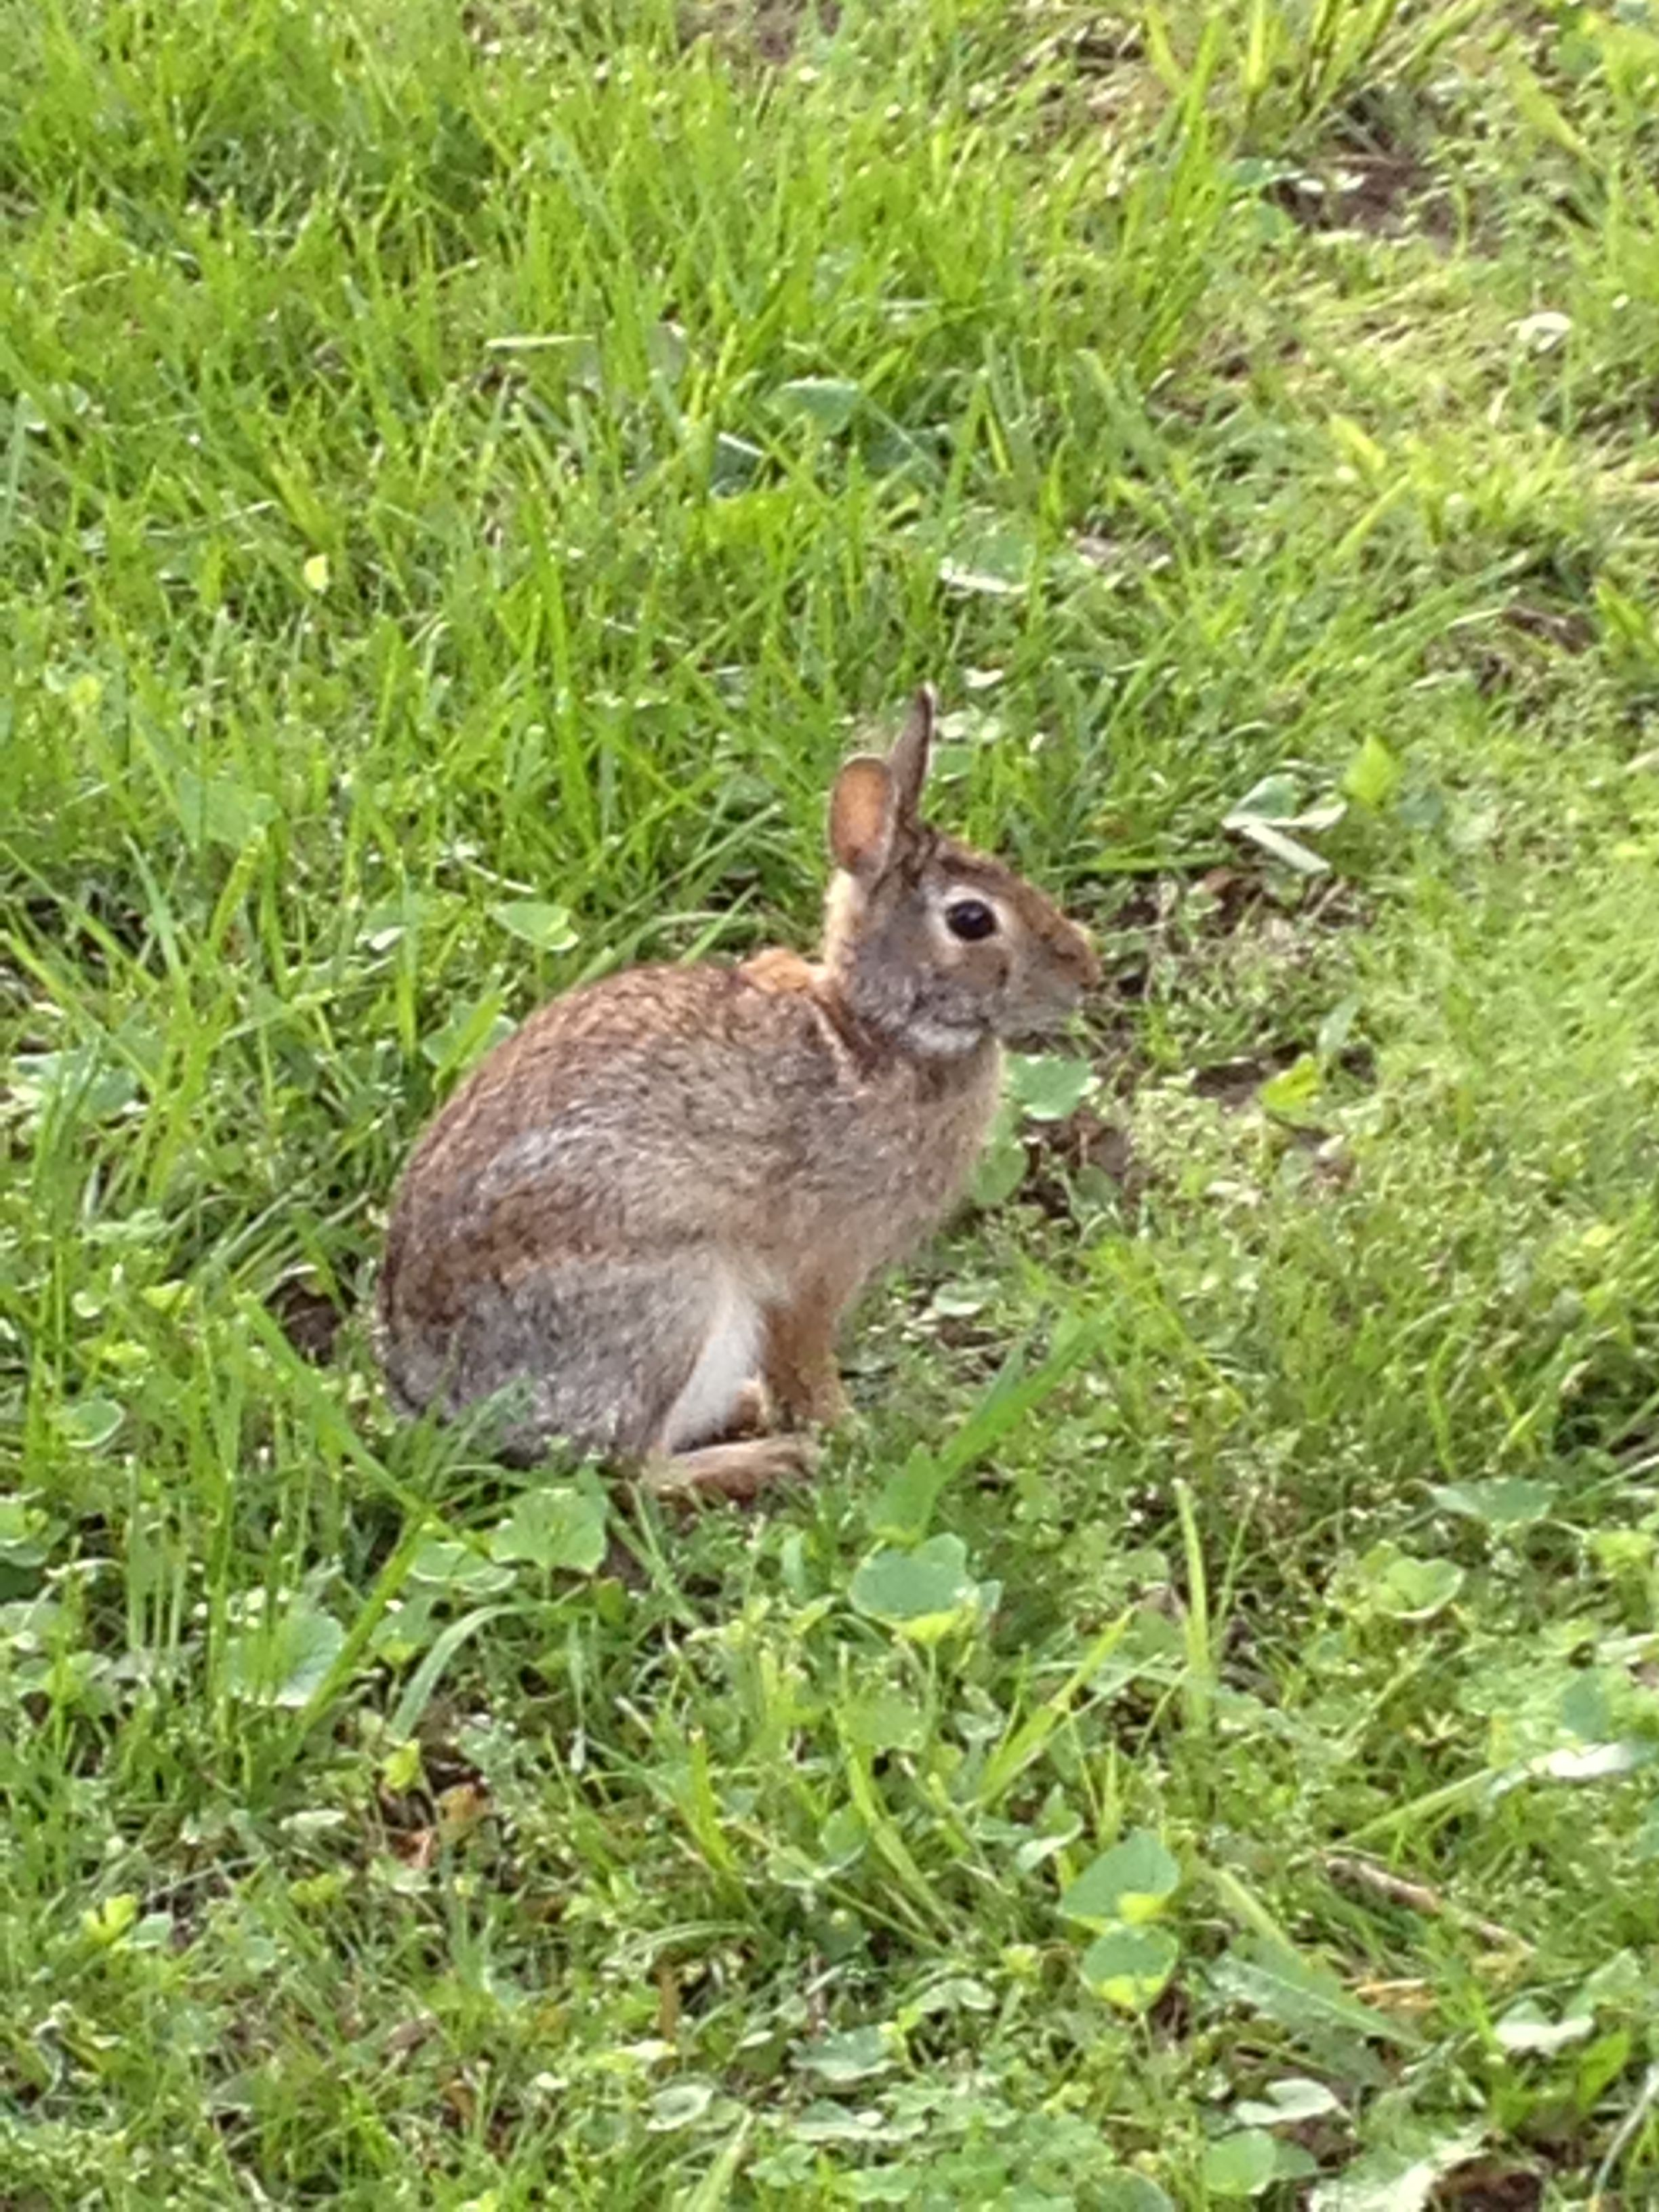 Born free one of the bunnies that lives in our backyard